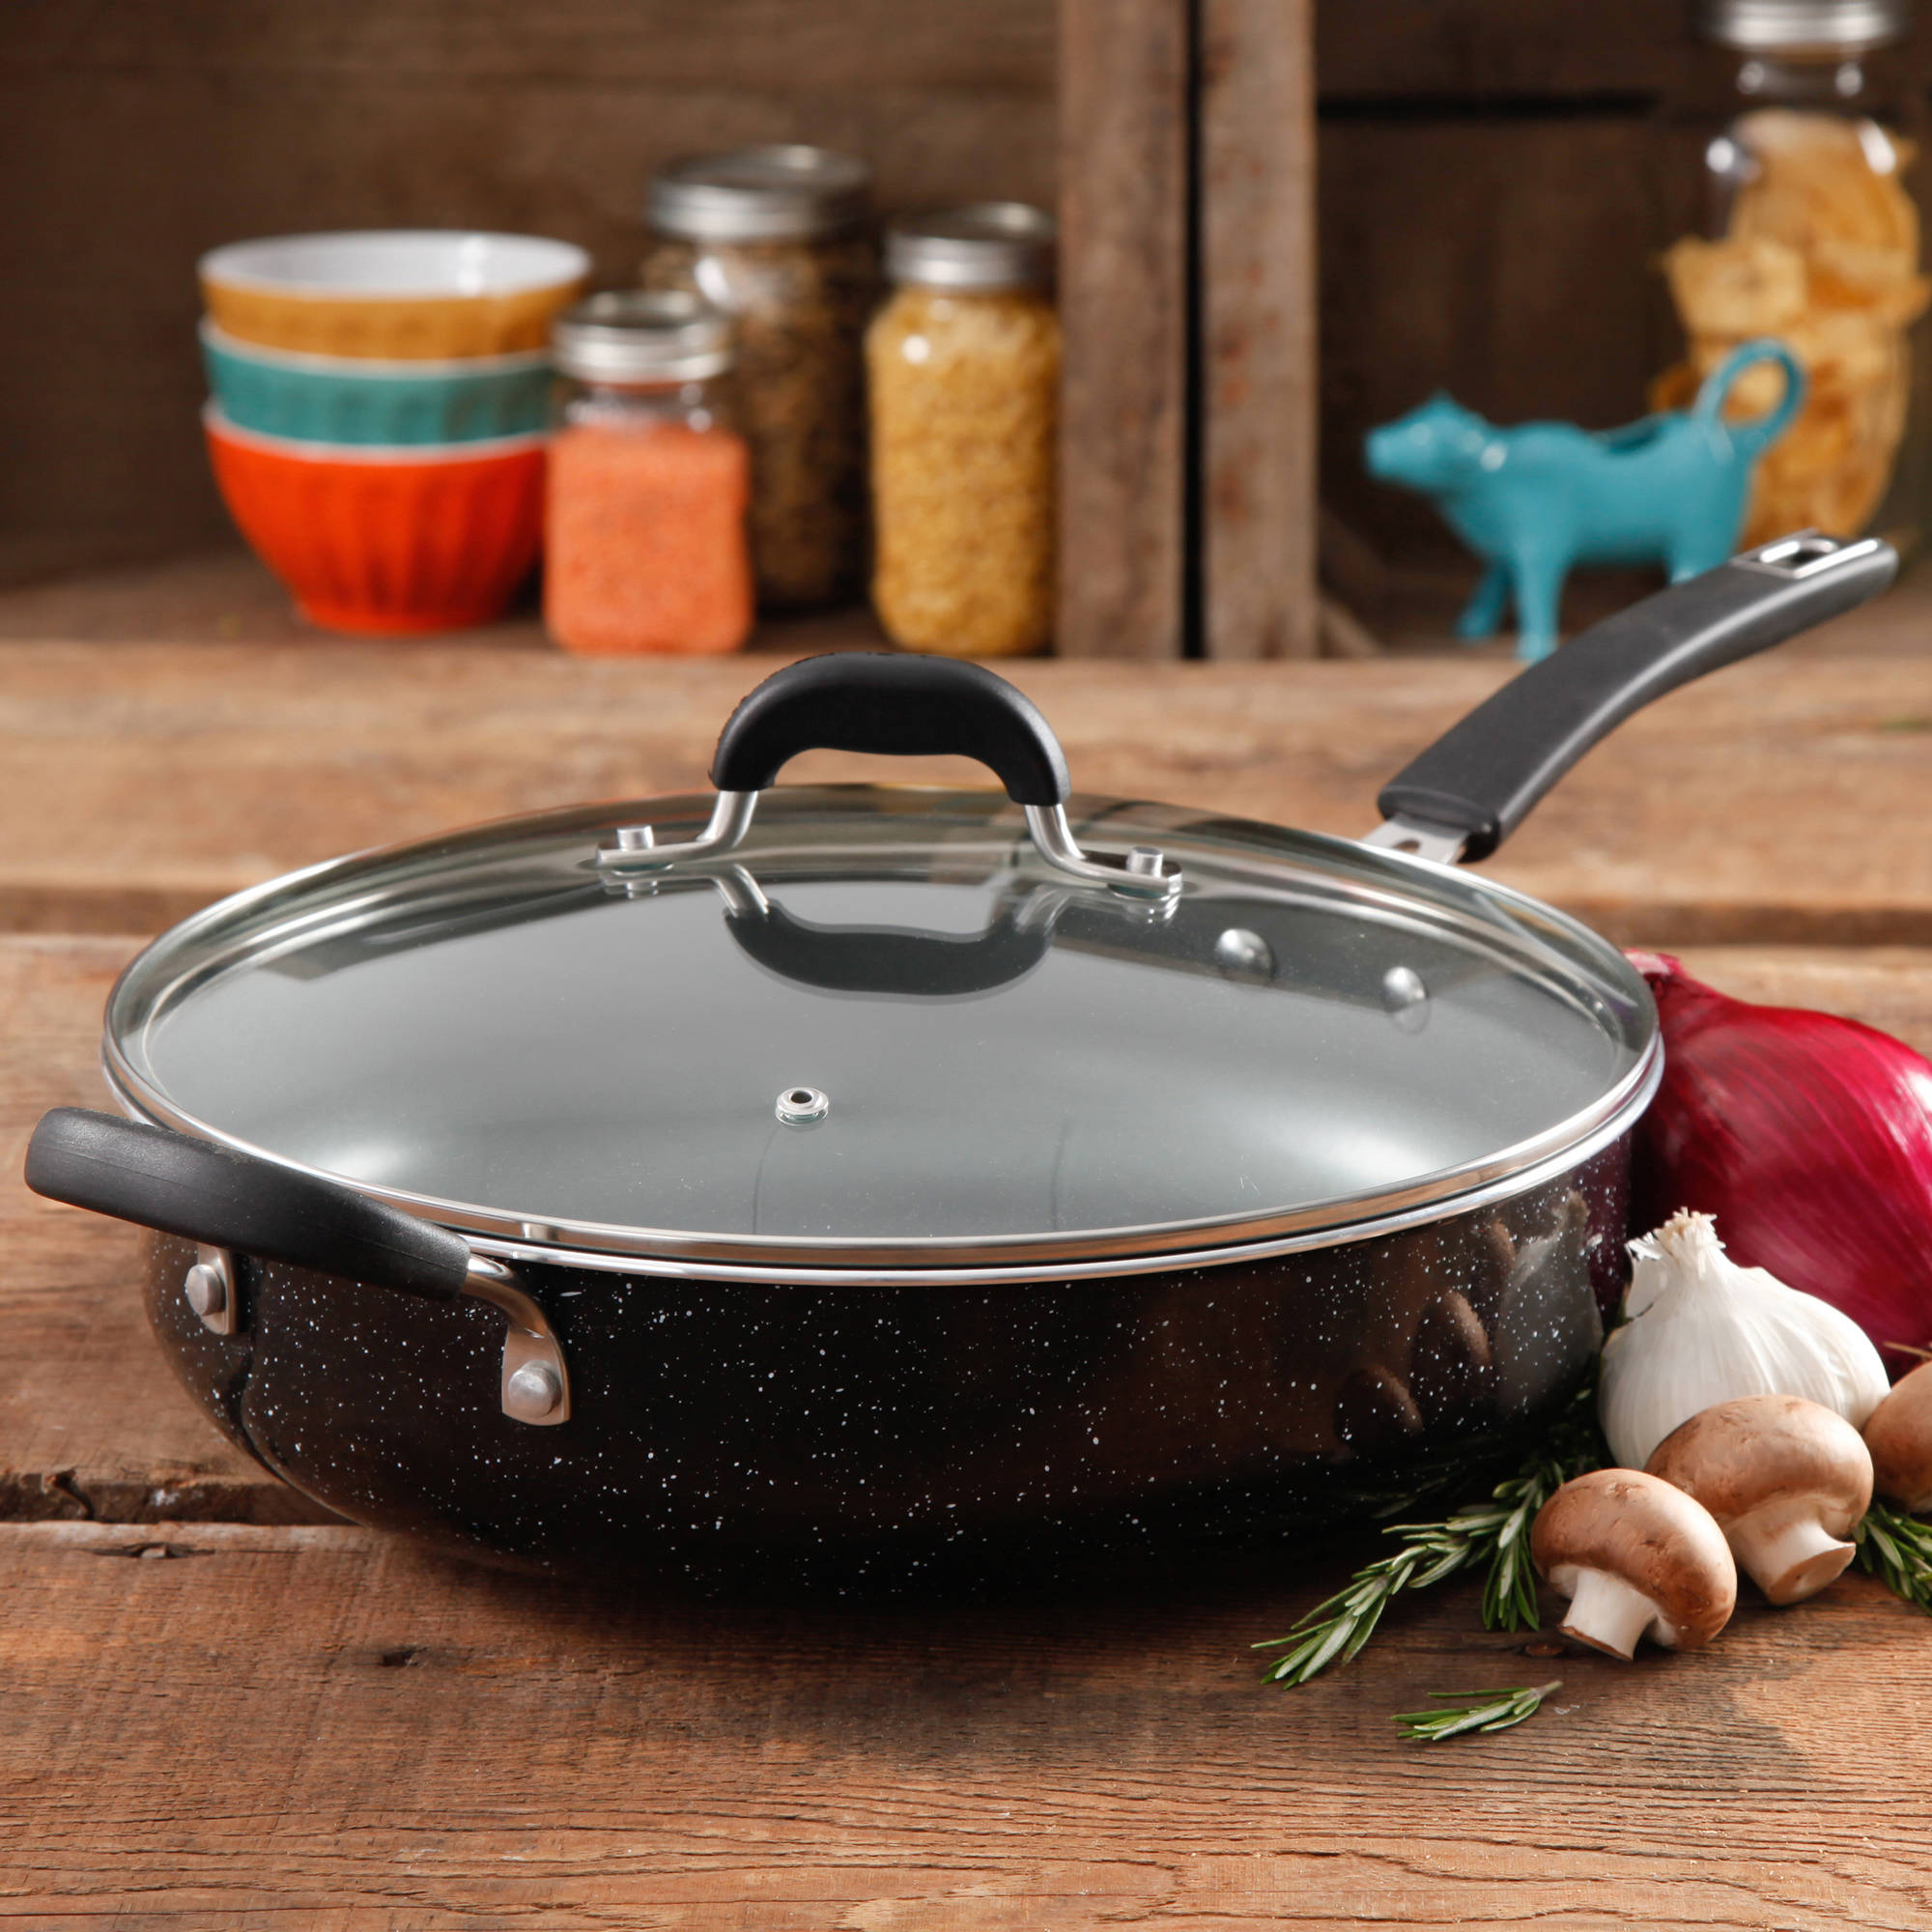 The Pioneer Woman Vintage Speckle Non-Stick Jumbo Cooker